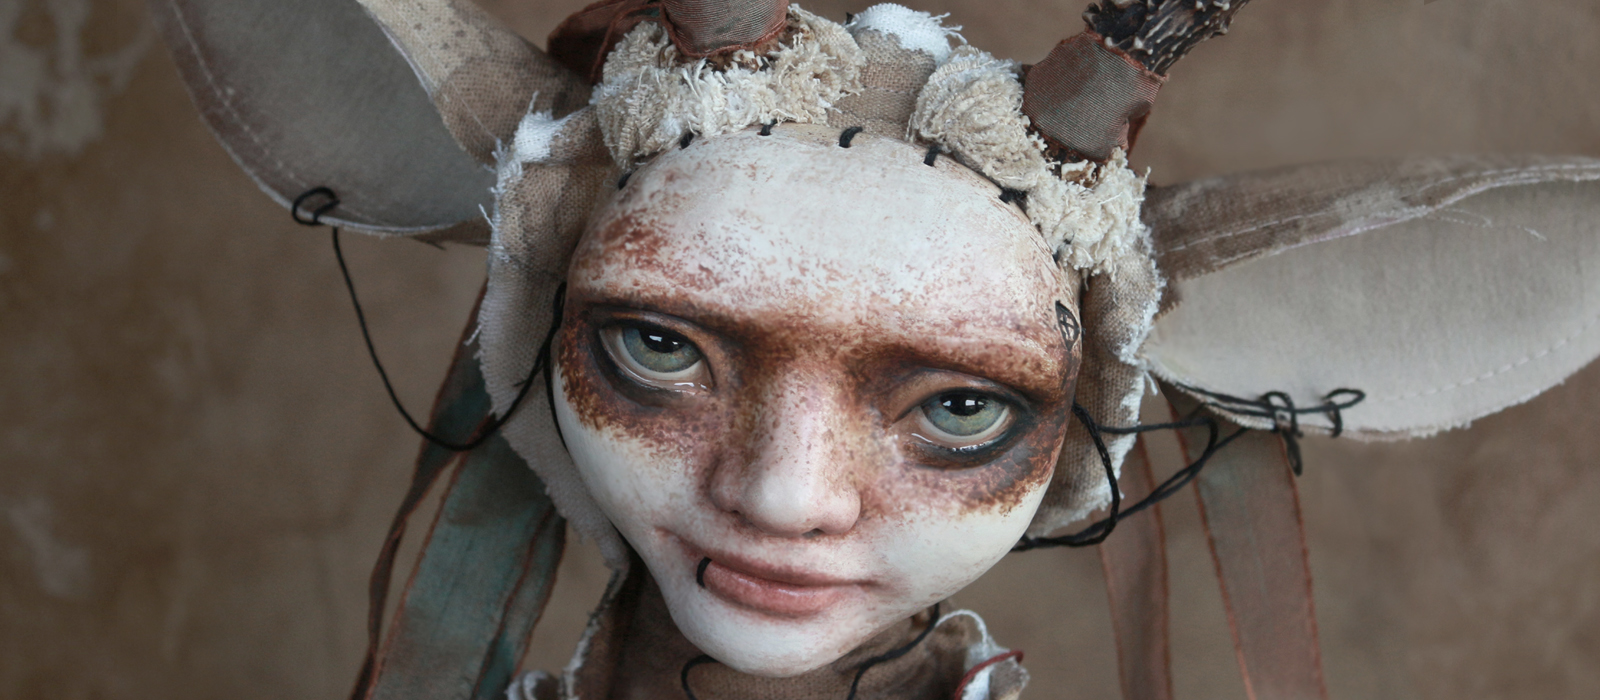 Lovia – phantasmagoric portrait doll